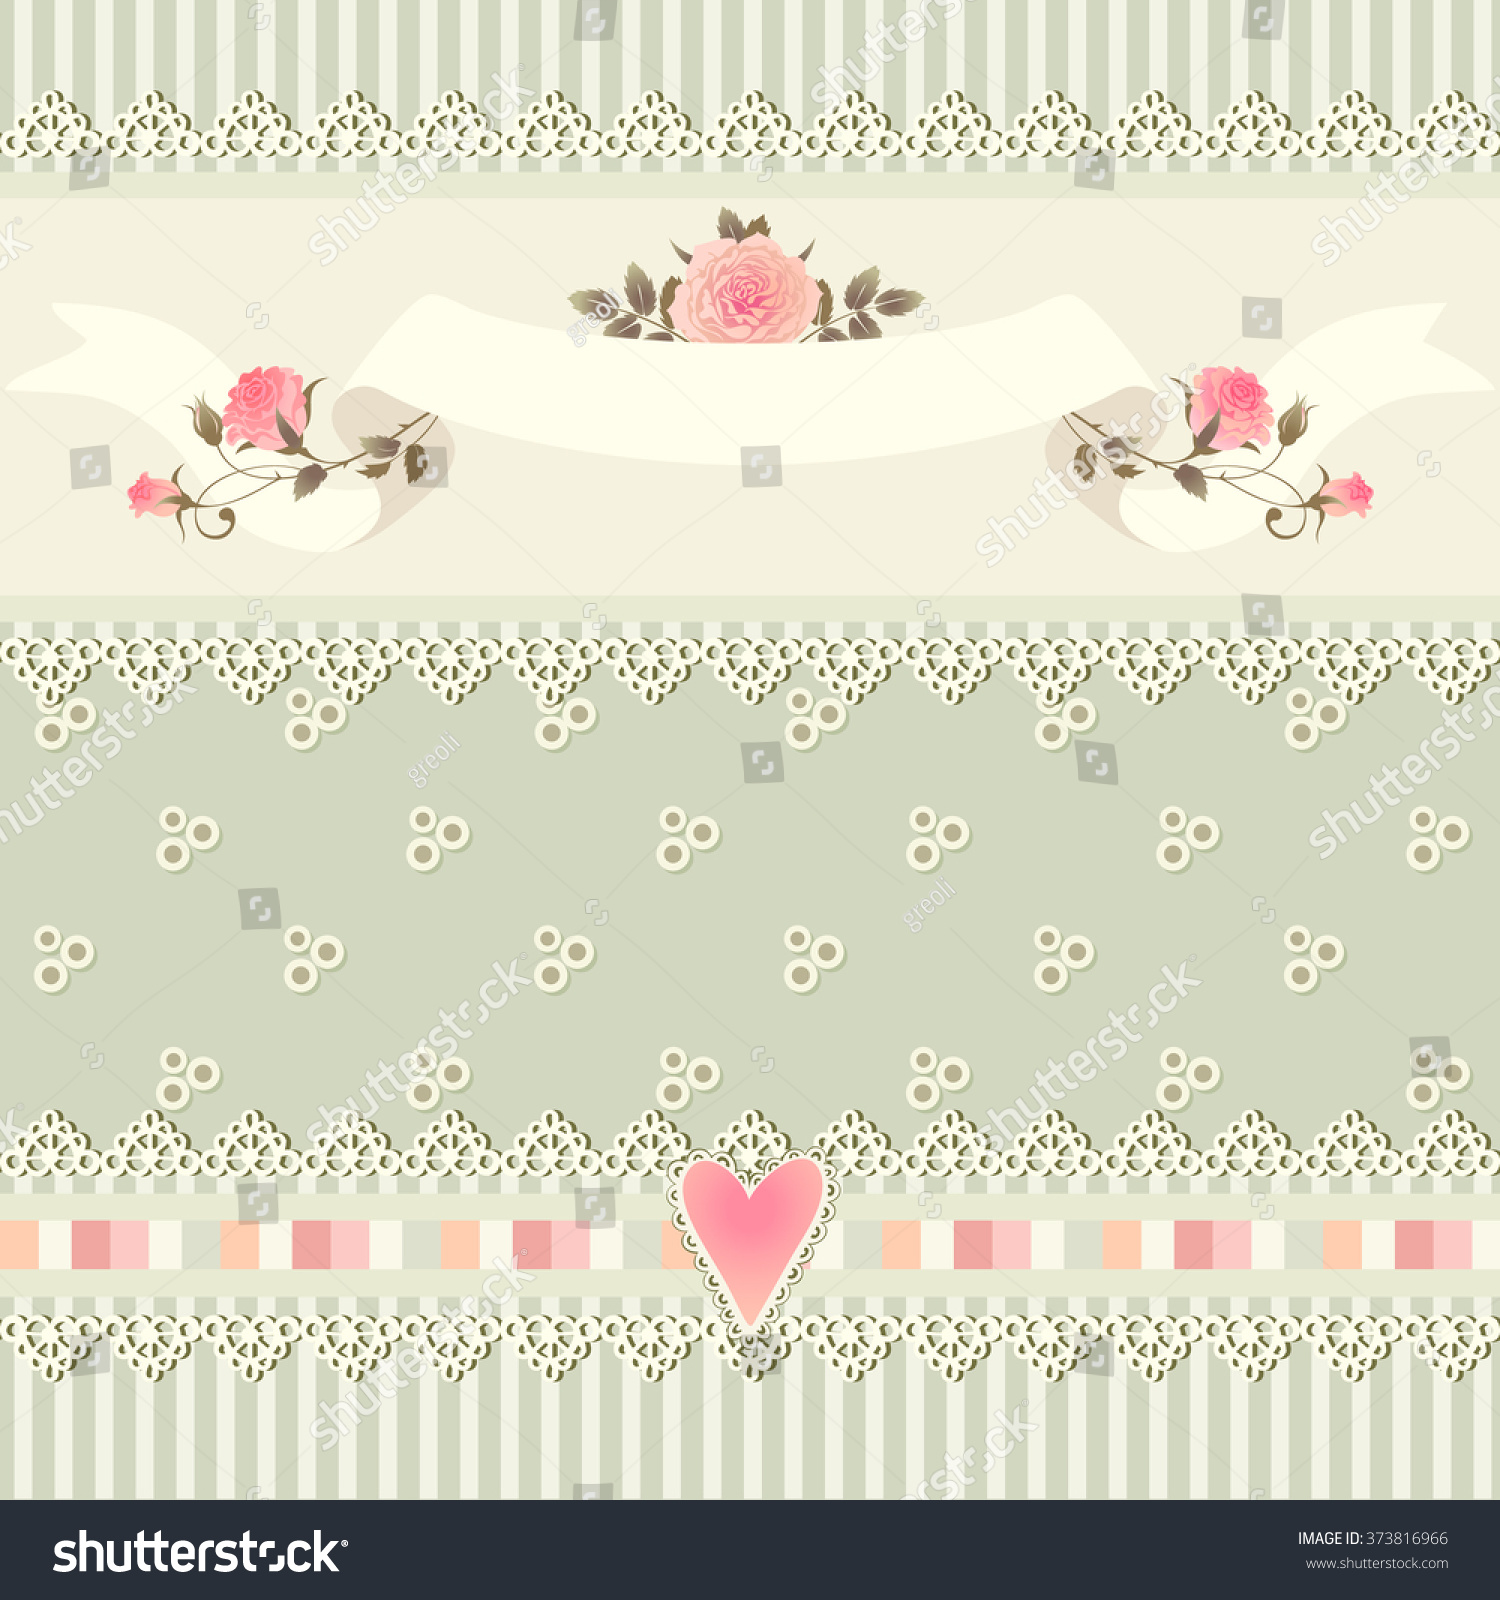 Seamless Floral Border Shabby Chic Style Stock Vector 373816966